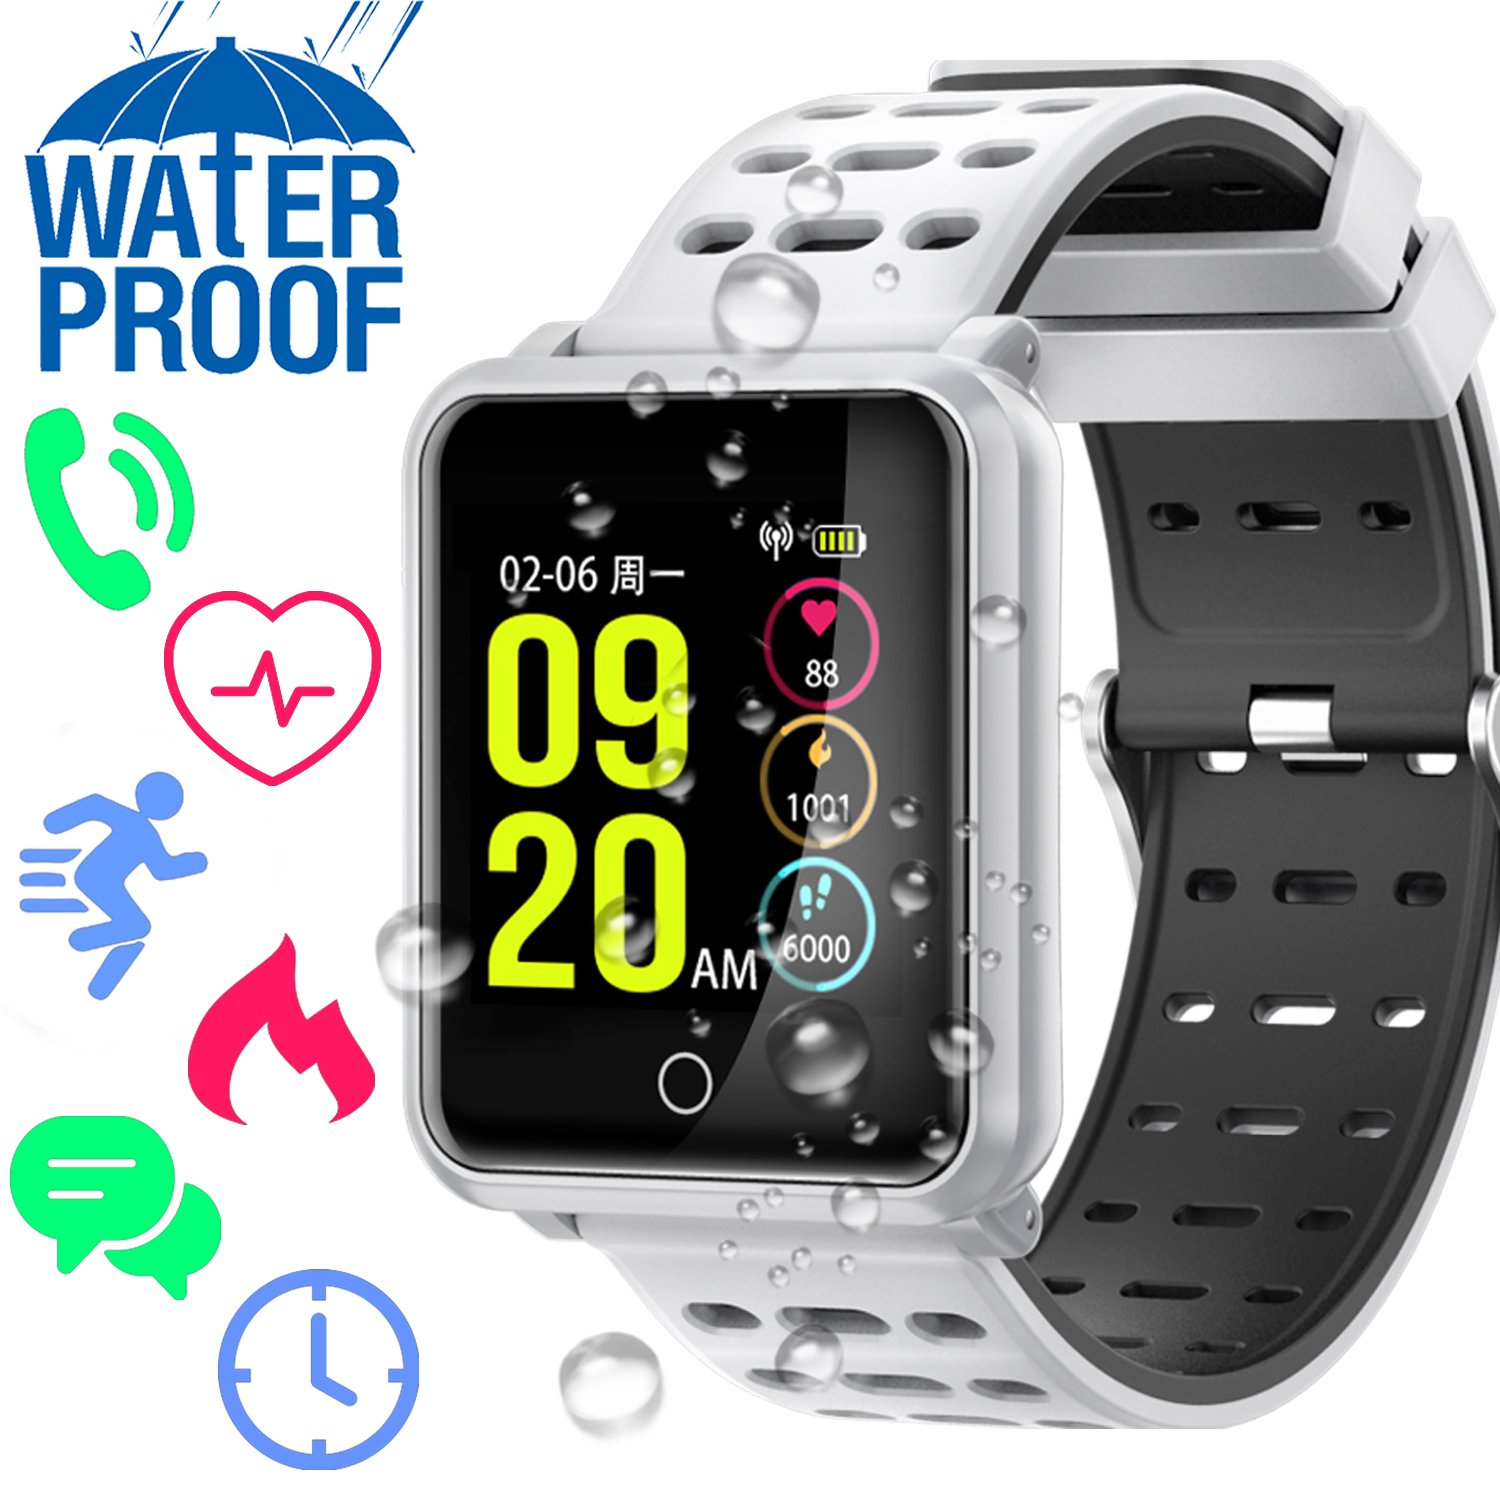 IP68 Waterproof Smart Watch – Sport Fitness Tracker with Heart Rate Monitor for Men Women Blood Pressure Calorie Pedometer Touch Screen Phone Smartwatch Swim Run GPS Activity Tracker for iOS Android